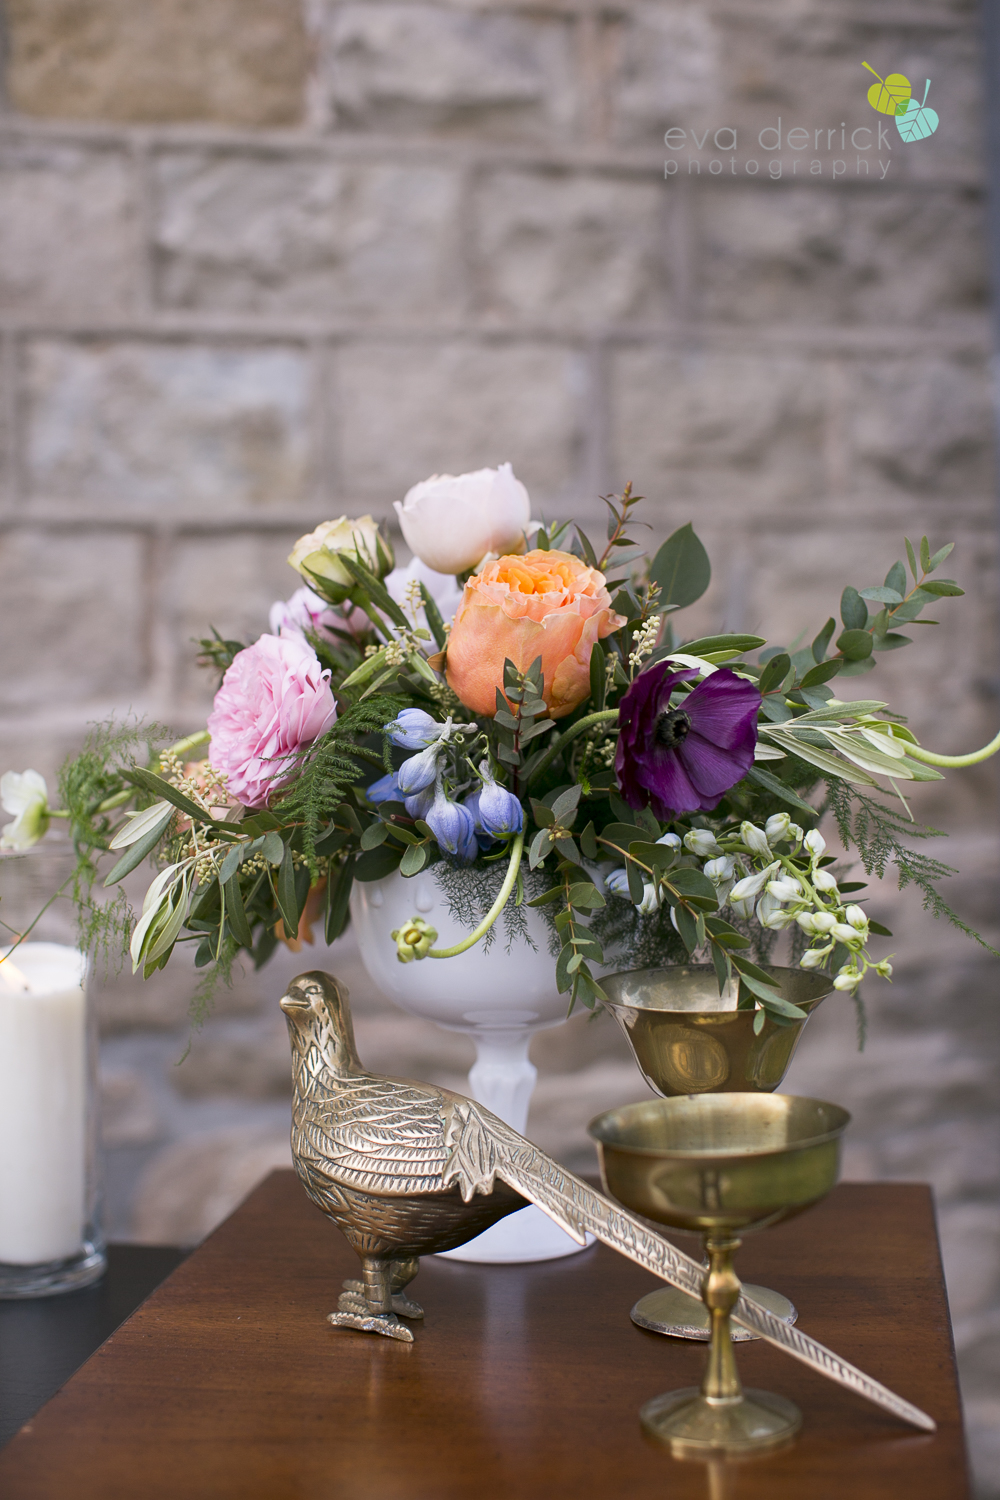 Niagara wedding florist_Toronto Wedding florist_Niagara weddings_ Toronto weddings_Eva Derrick Photography_floral crown_Ooh La La Designs_17